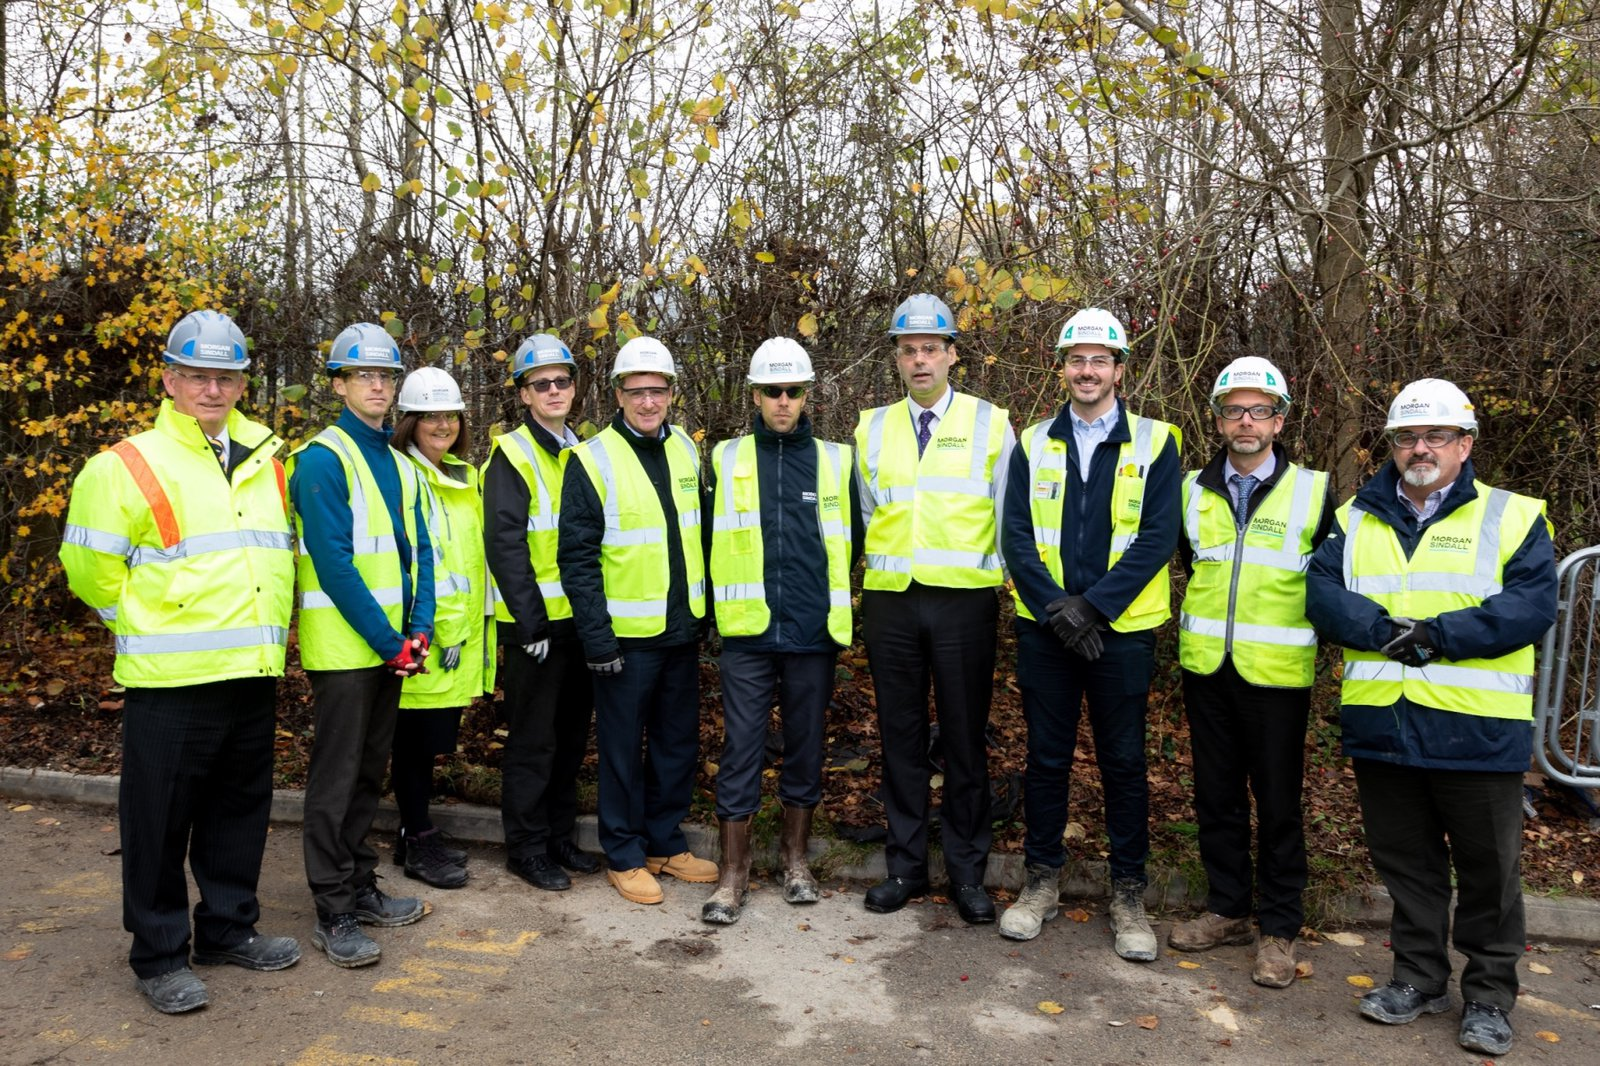 Morgan Sindall Construction and stakeholders at a topping out event